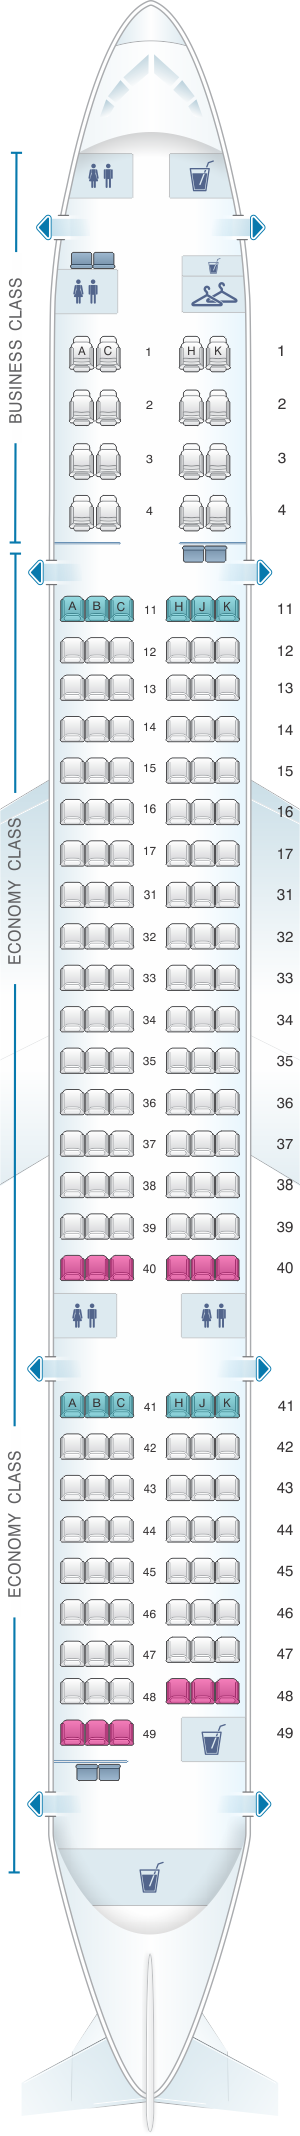 Seat map for Air Astana Boeing B757 200